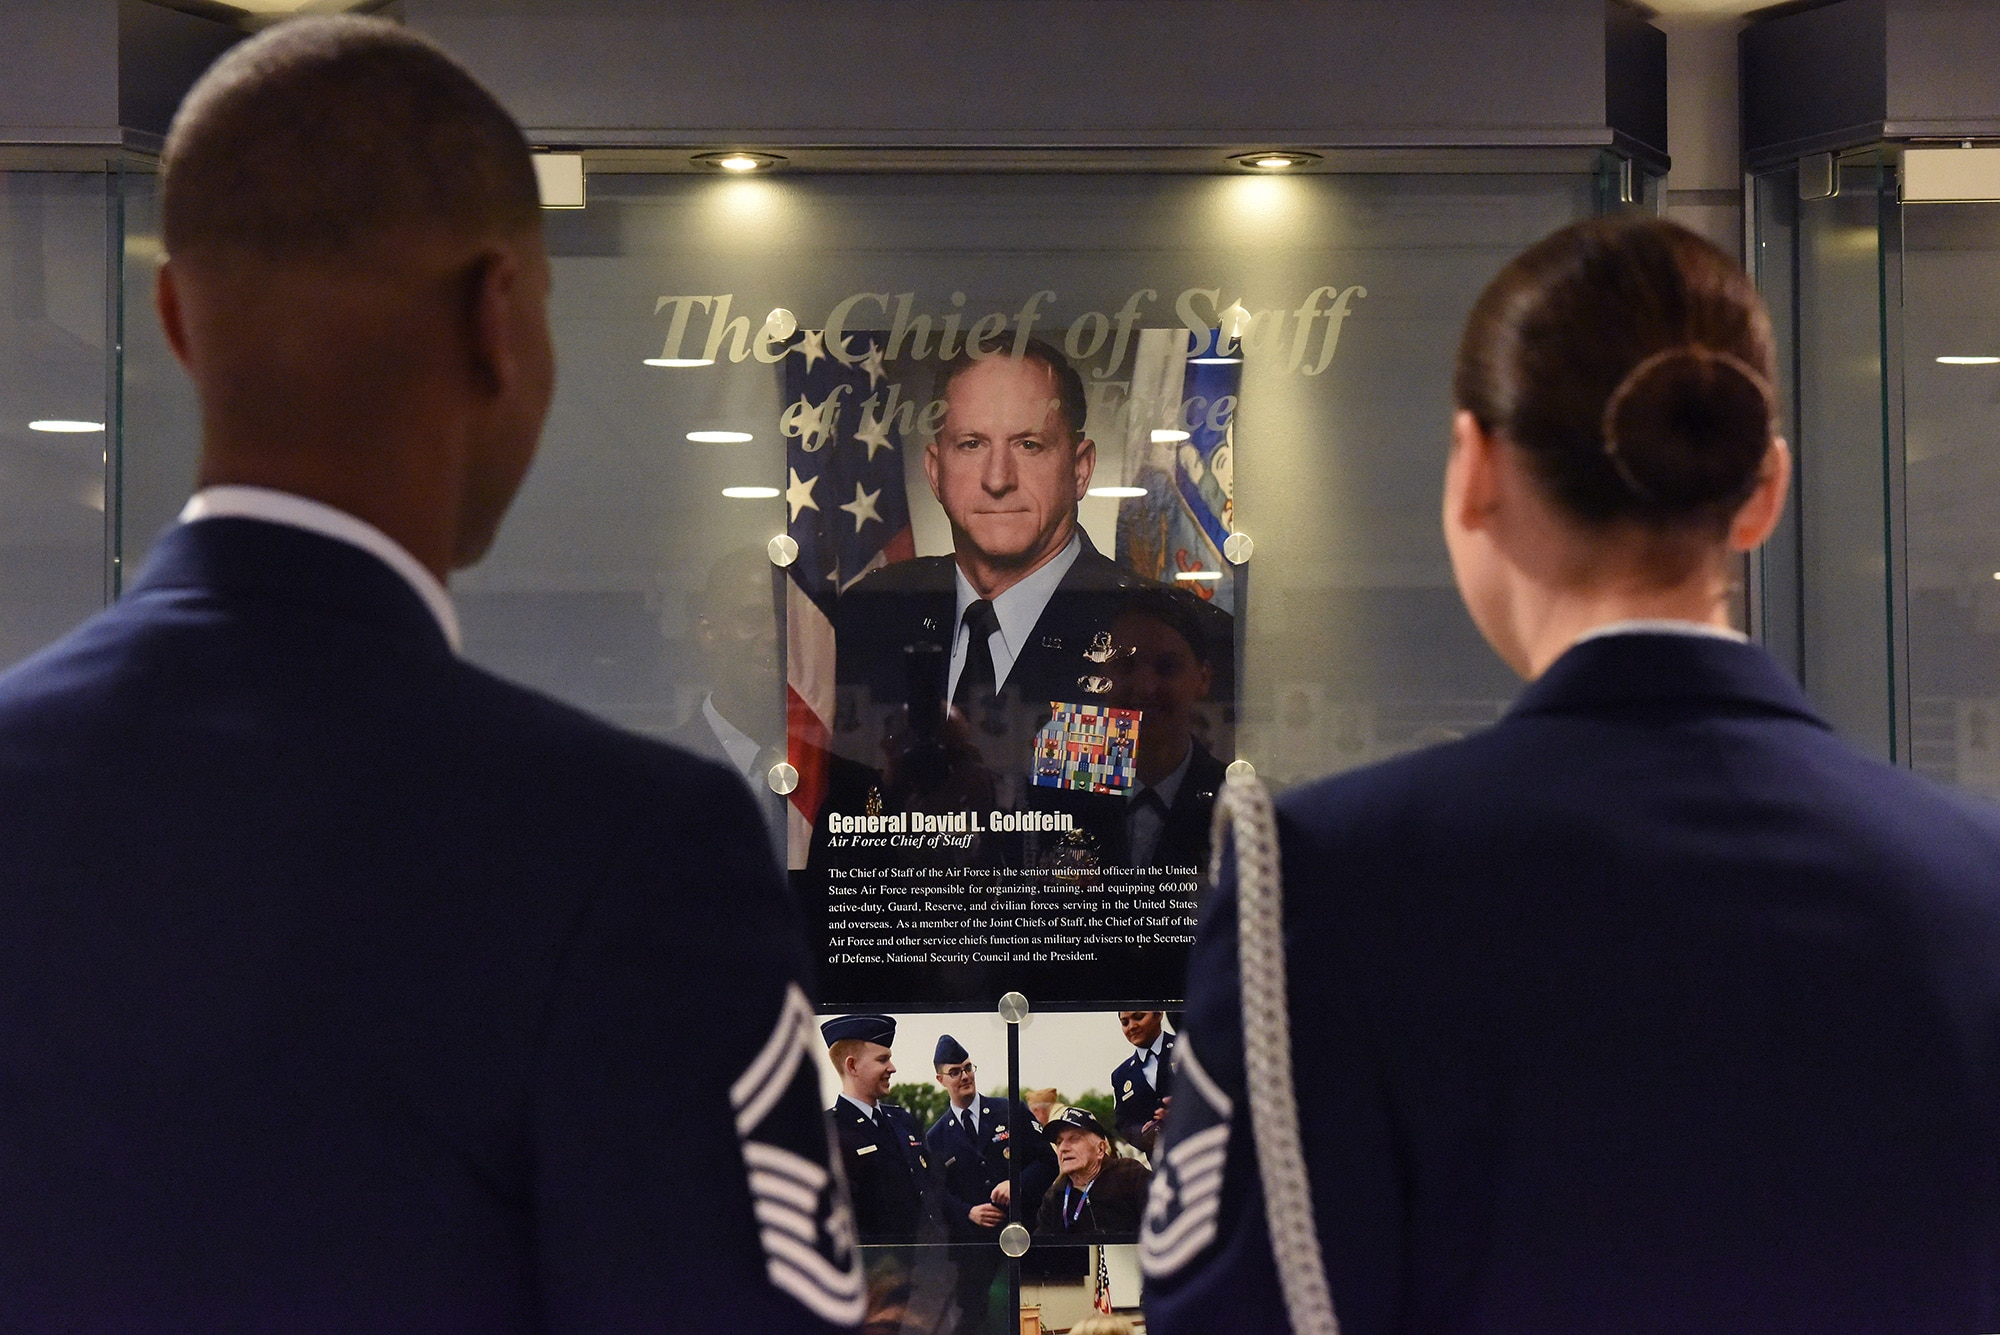 """Air Force Chief of Staff Gen. David L. Goldfein's photo and biography are now on display in the """"Airmen's Hall"""" after he was sworn into office by Air Force Secretary Deborah Lee James during a ceremony at the Pentagon in Washington, D.C., June 1, 2016. Goldfein became the 21st chief of staff of the Air Force. (U.S. Air Force photo/Tech Sgt. Dan DeCook)"""